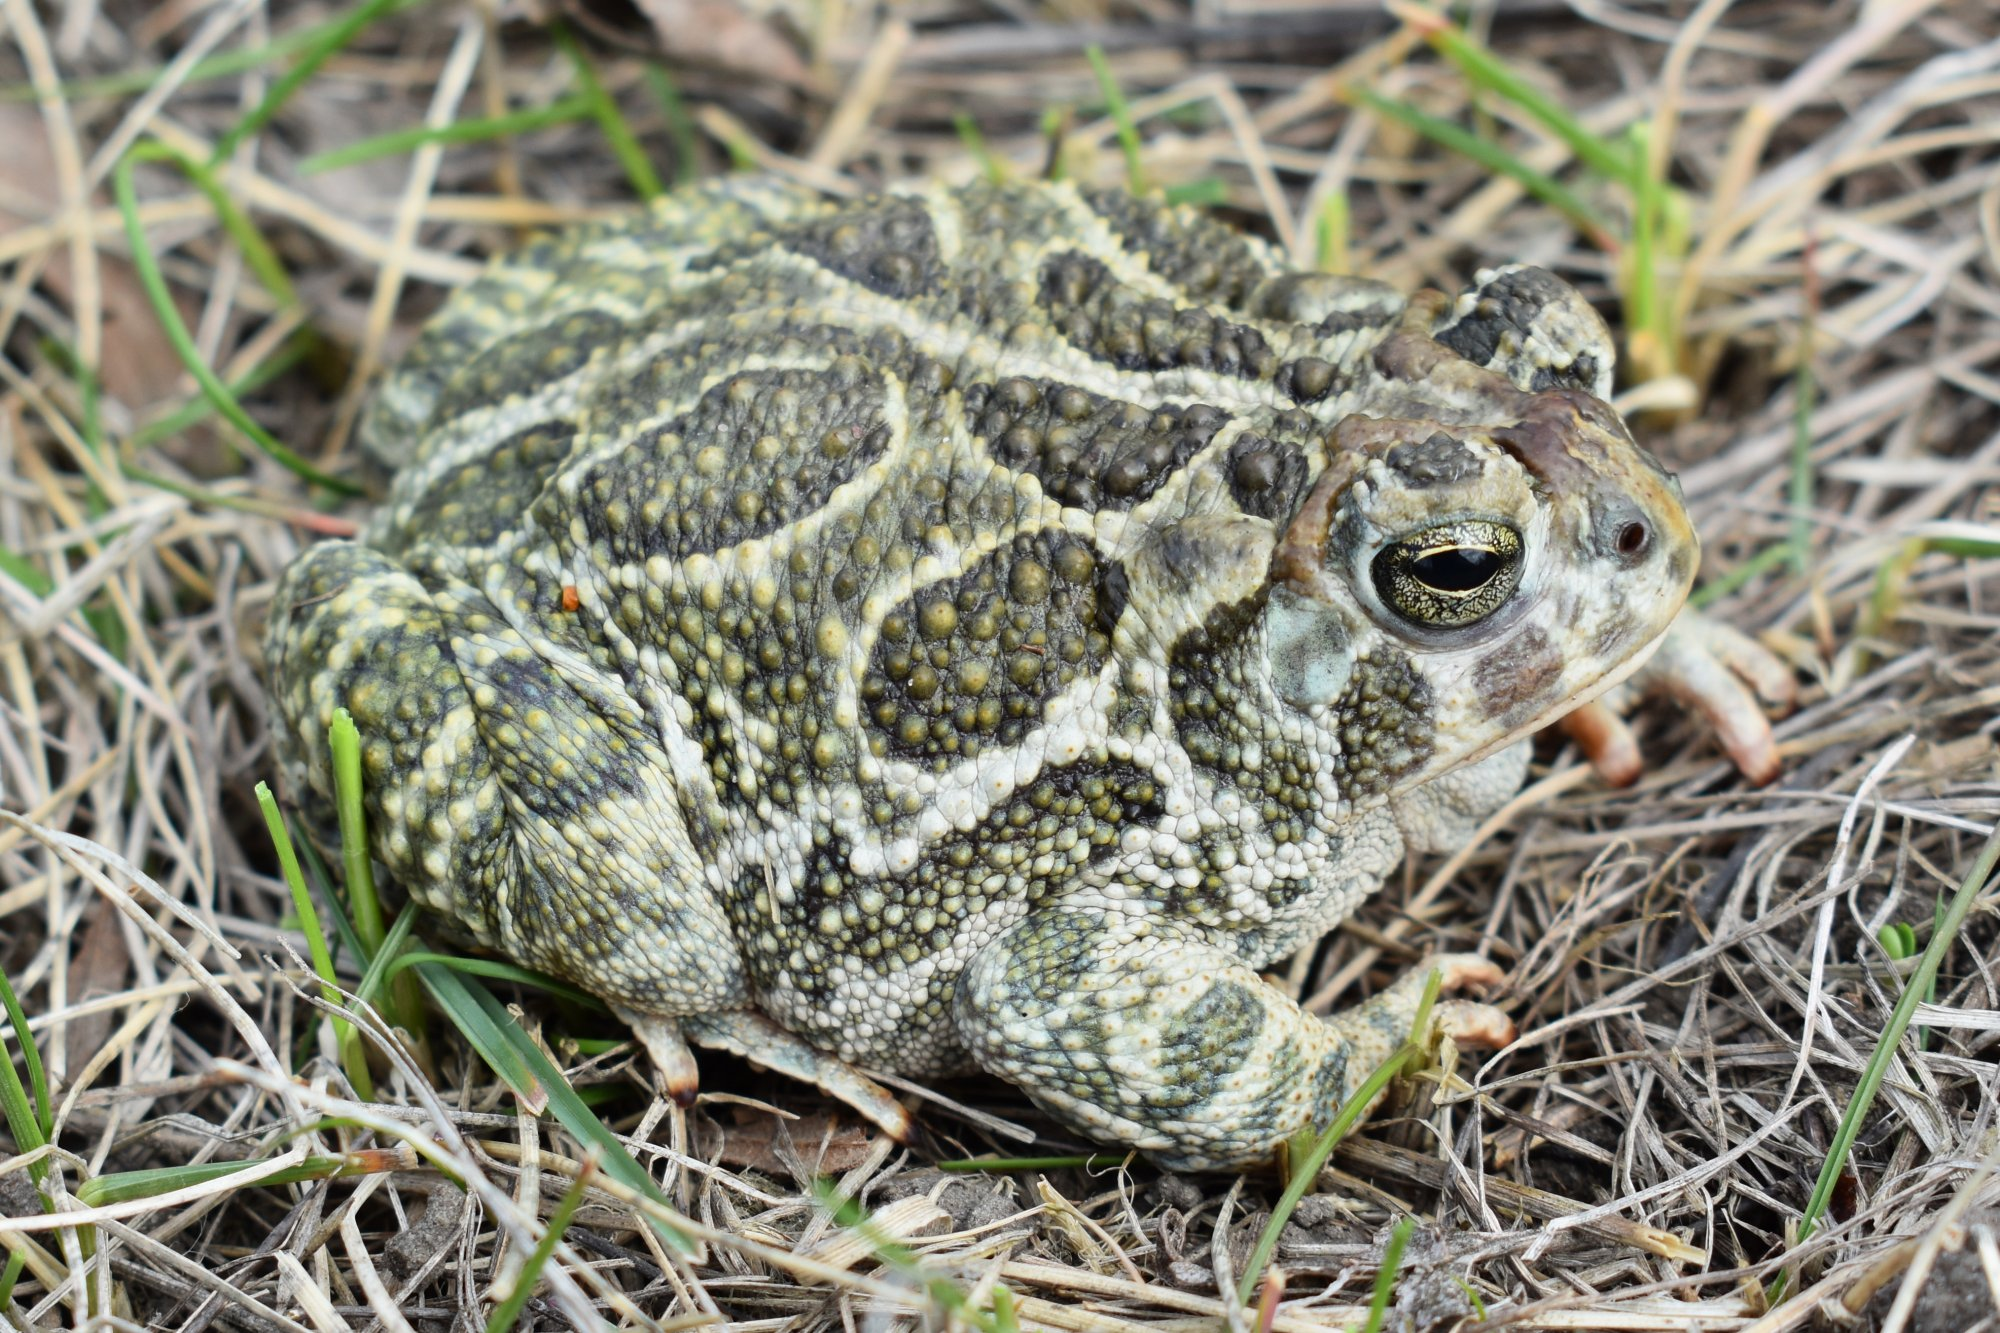 Spanish Porn Star Arrested After Participant In Mystic Ritual Dies After Inhaling Psychedelic Toad Venom